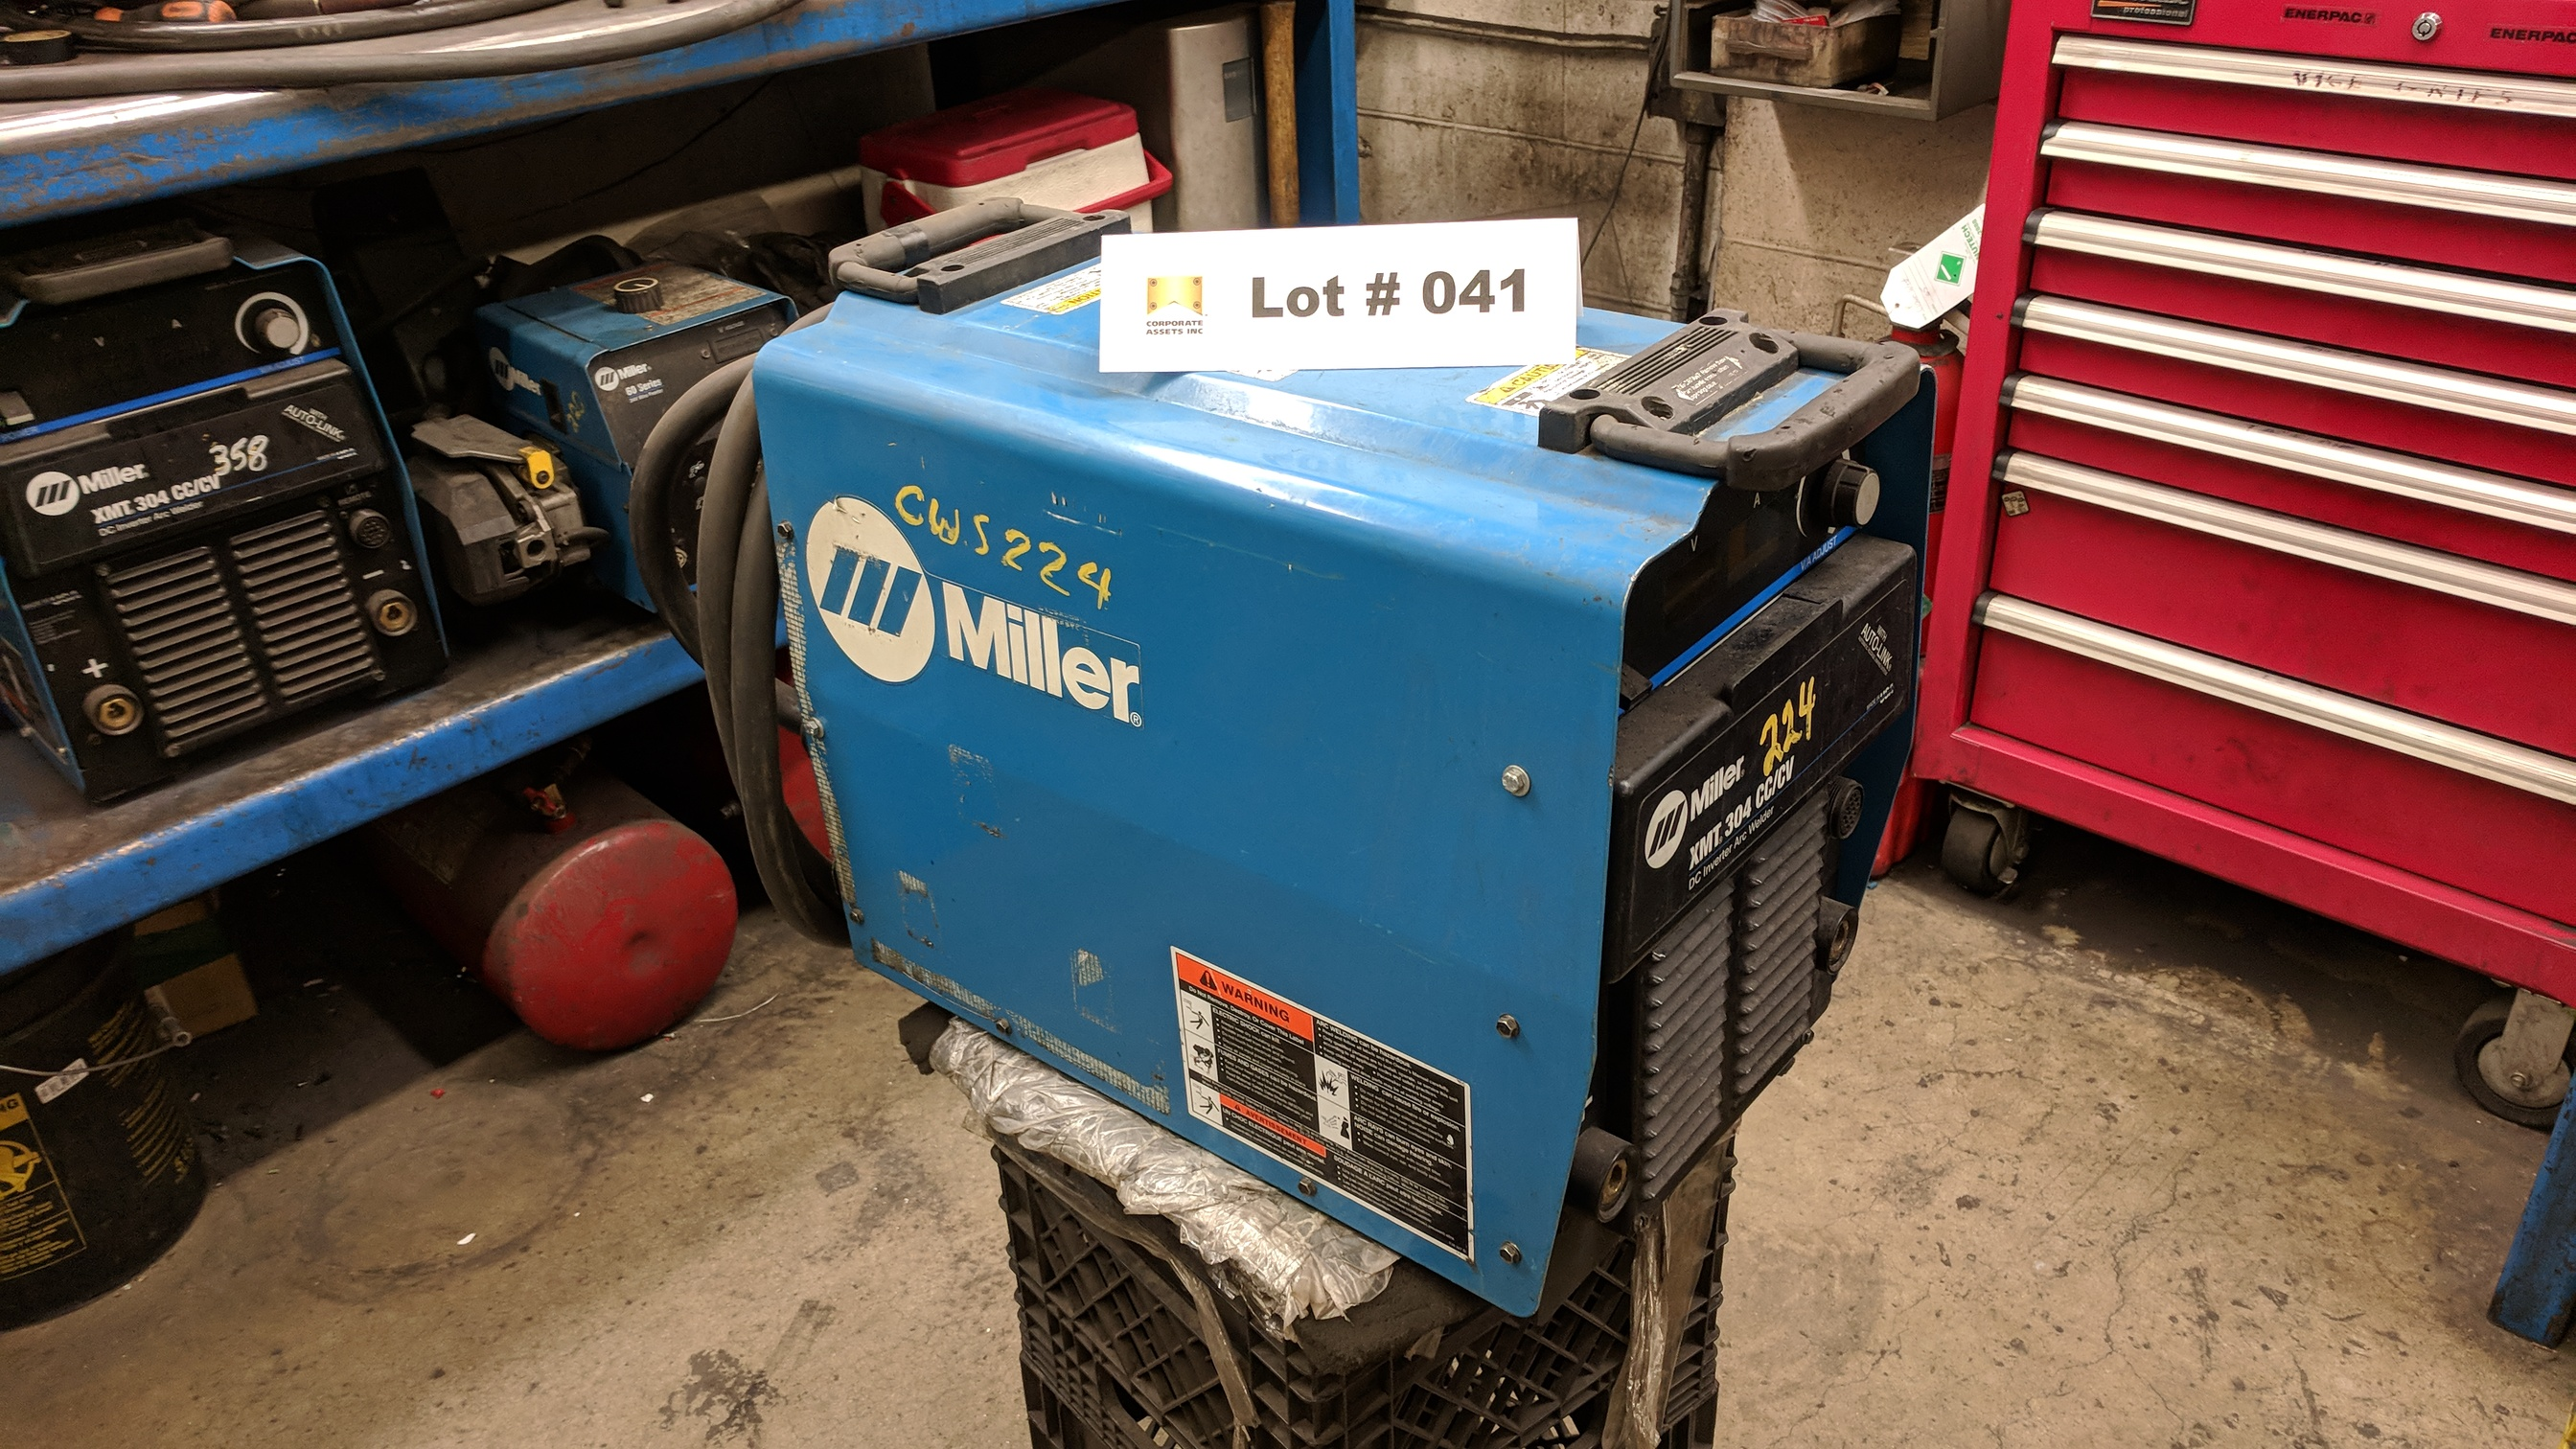 MILLER XMT 304 CC/CV DC INVERTER ARC WELDER WITH CABLES AND GUN, S/N N/A